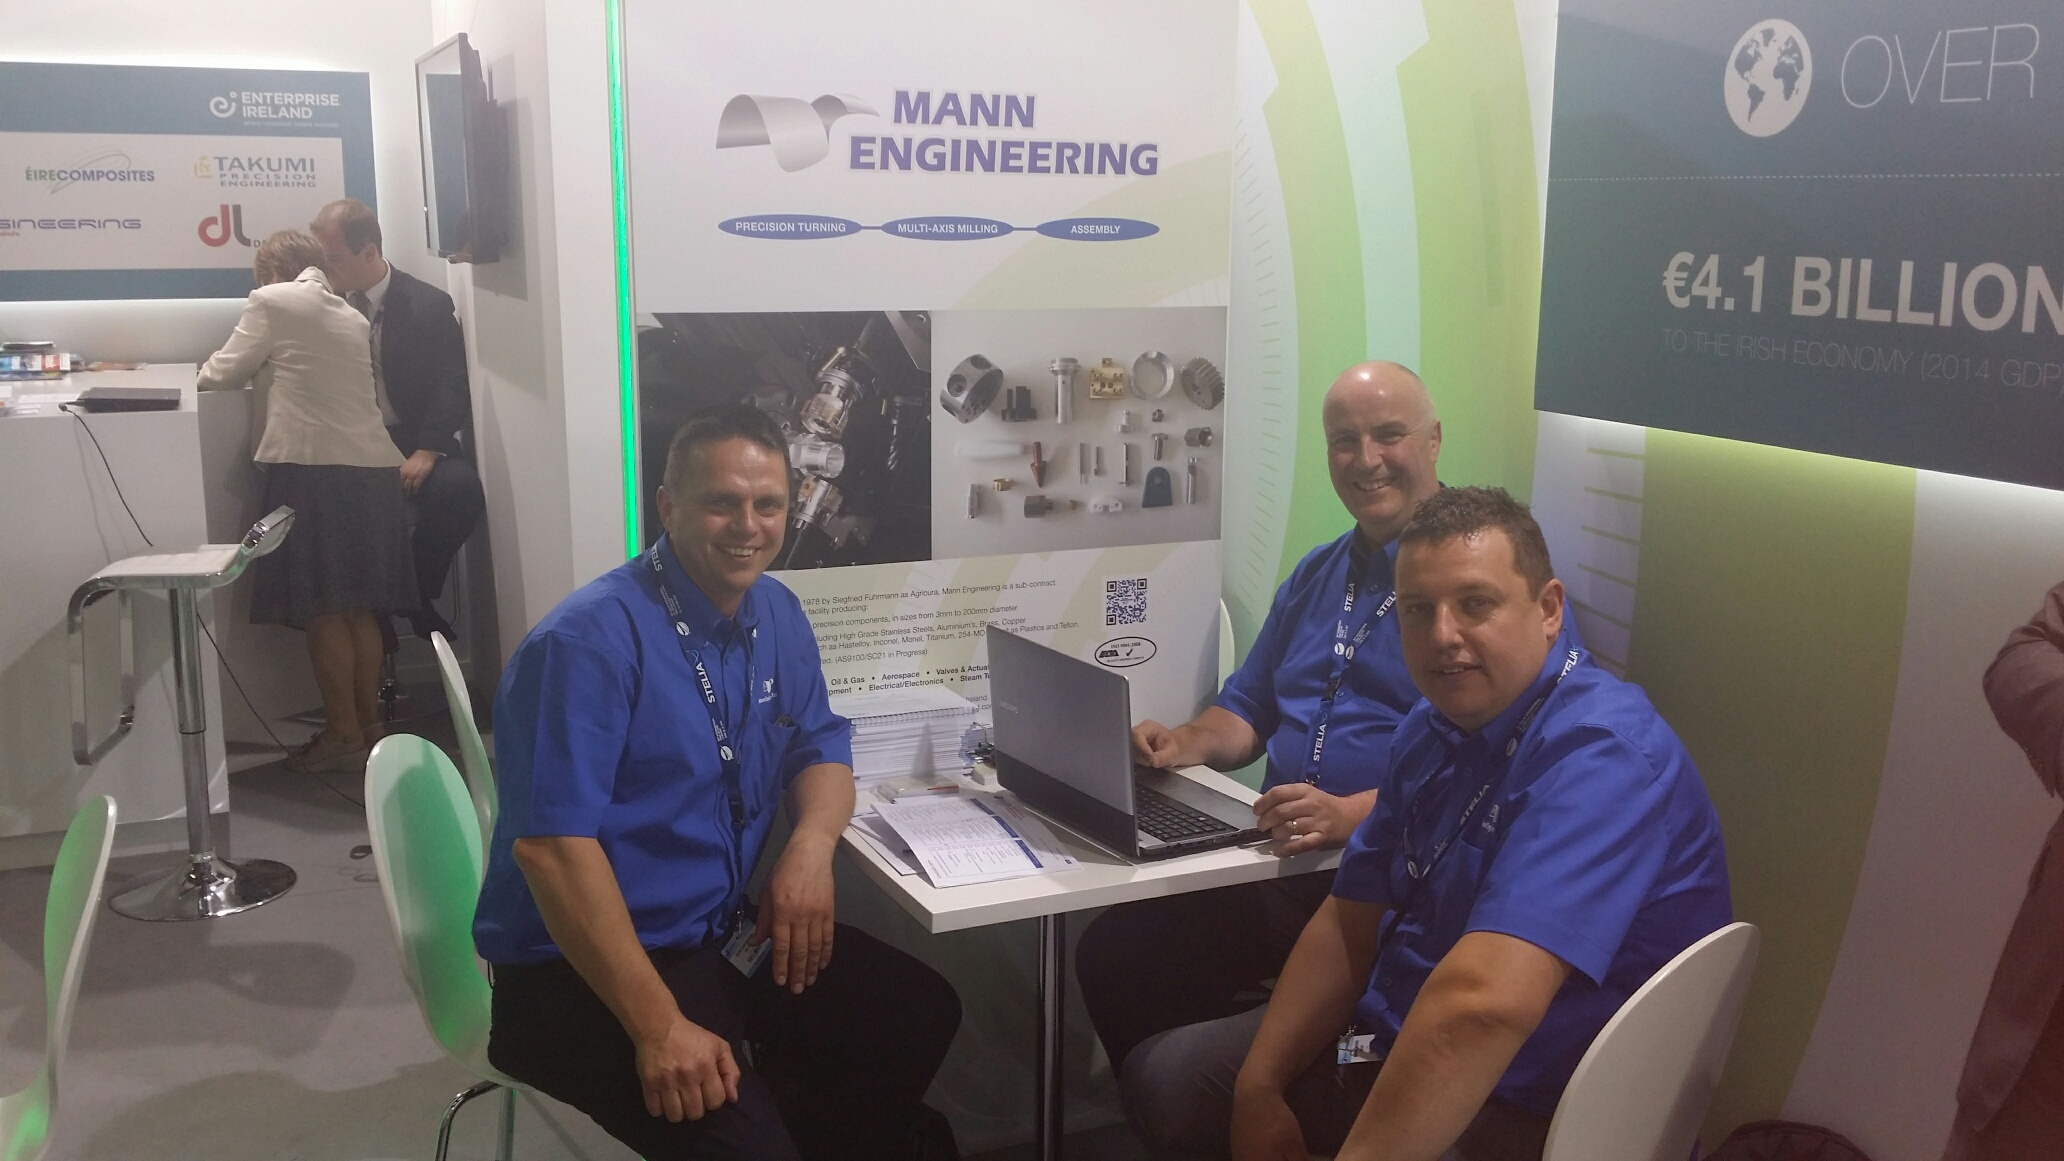 Mann Engineering Stand